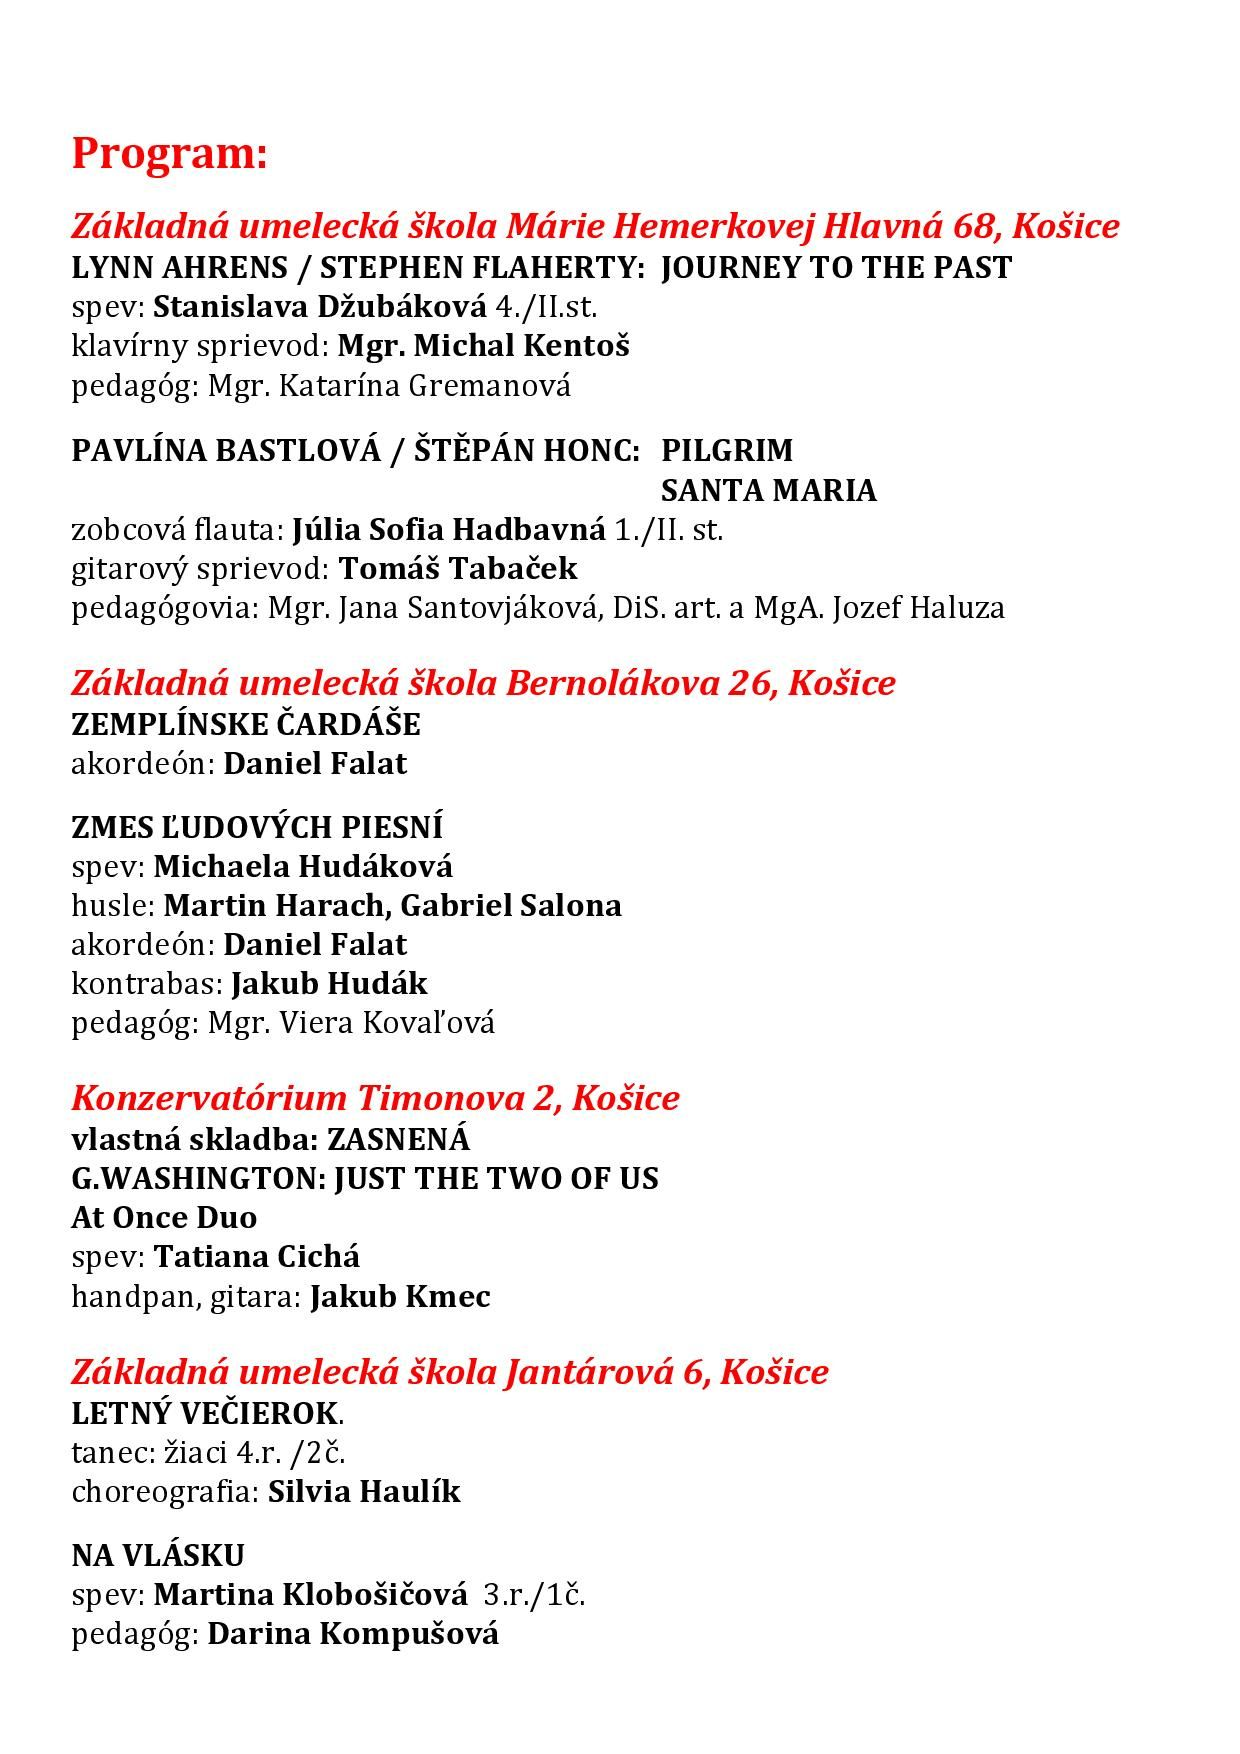 Galakoncert program 2019 02